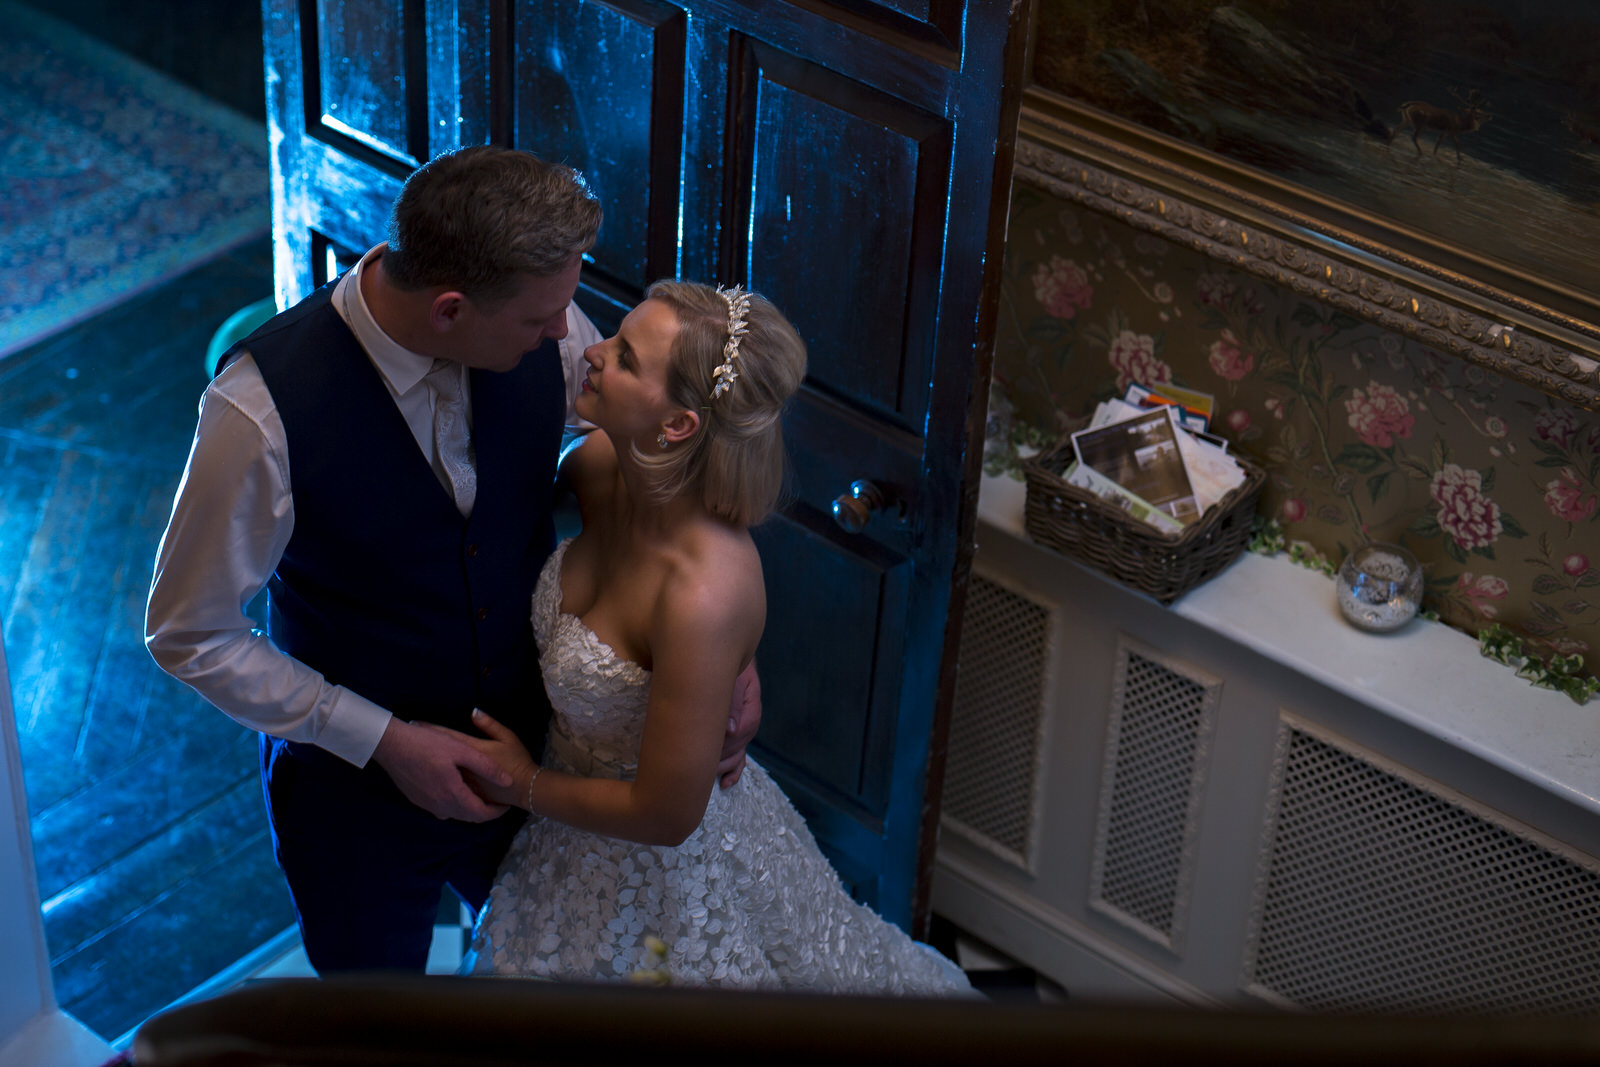 Ashley_park_wedding_photographer_ireland_a200.jpg